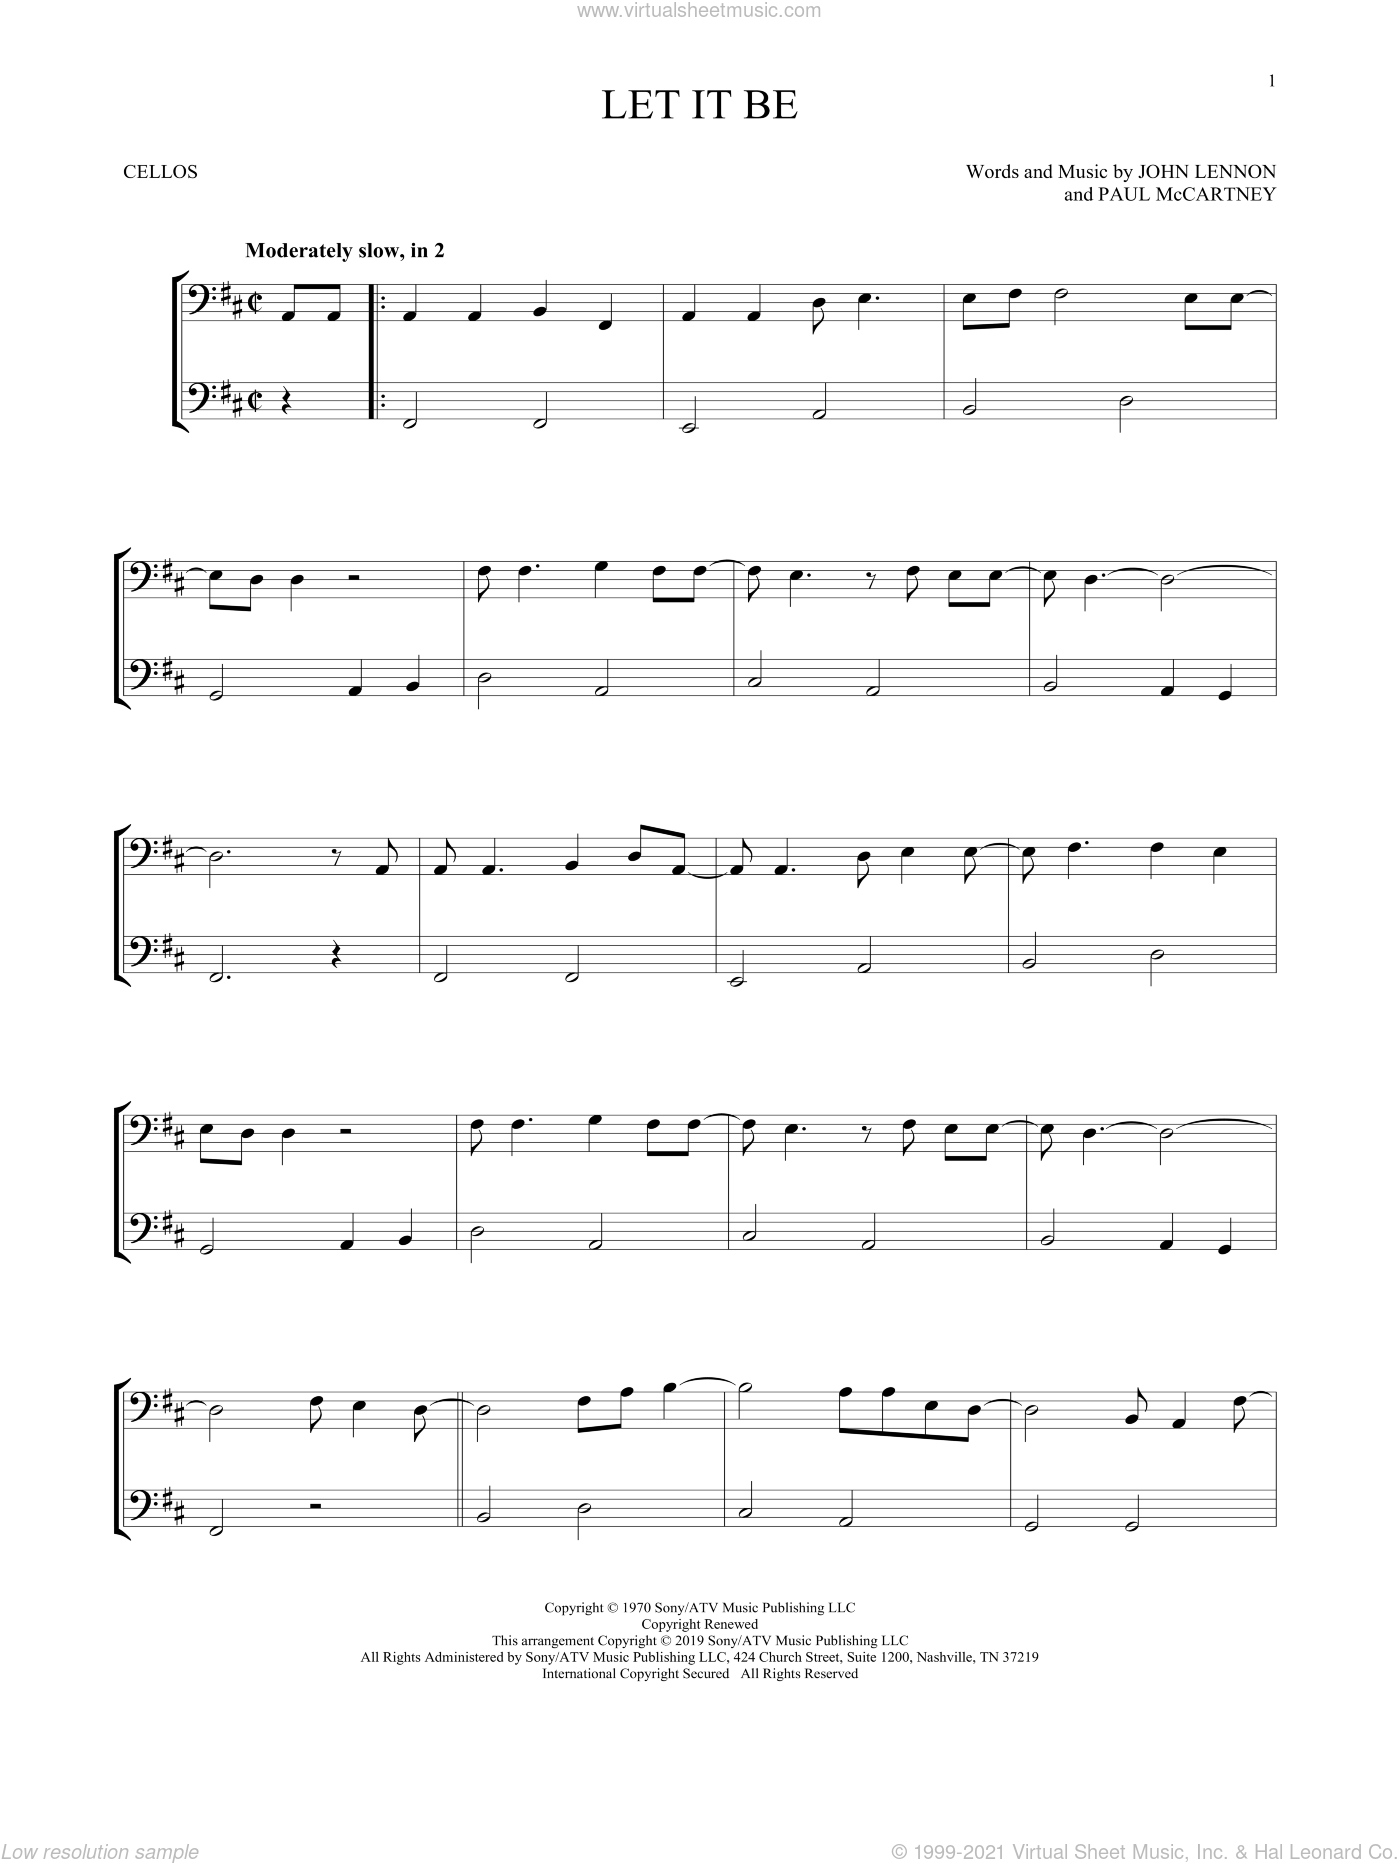 Let It Be sheet music for two cellos (duet, duets) by The Beatles, John Lennon and Paul McCartney, intermediate skill level